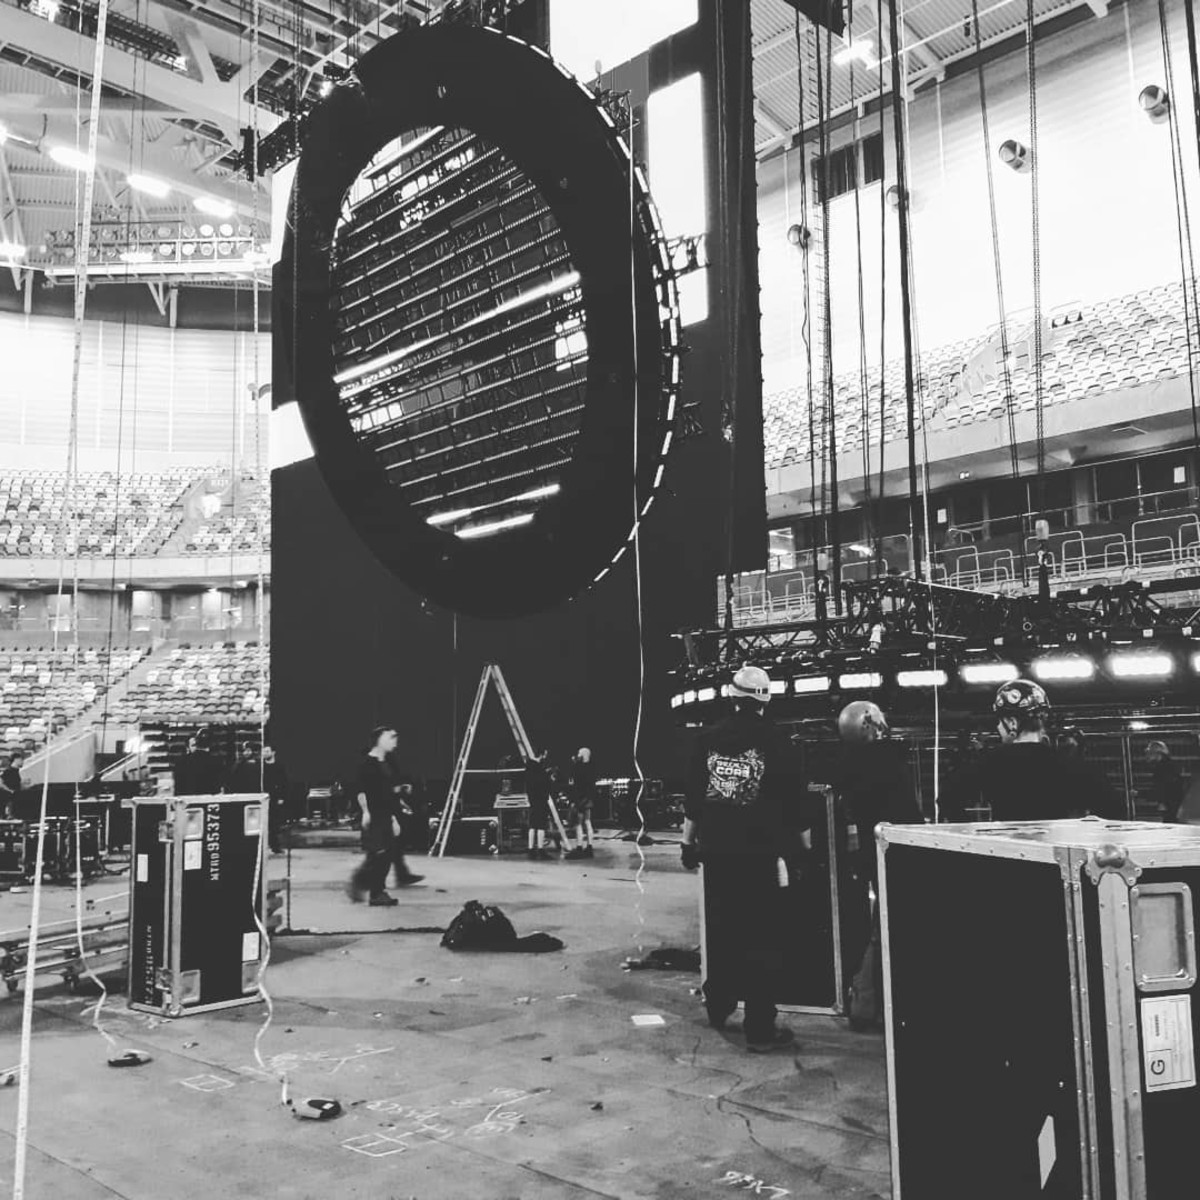 ⋆ The First Photos of Swedish House Mafia's Stage Setup Are